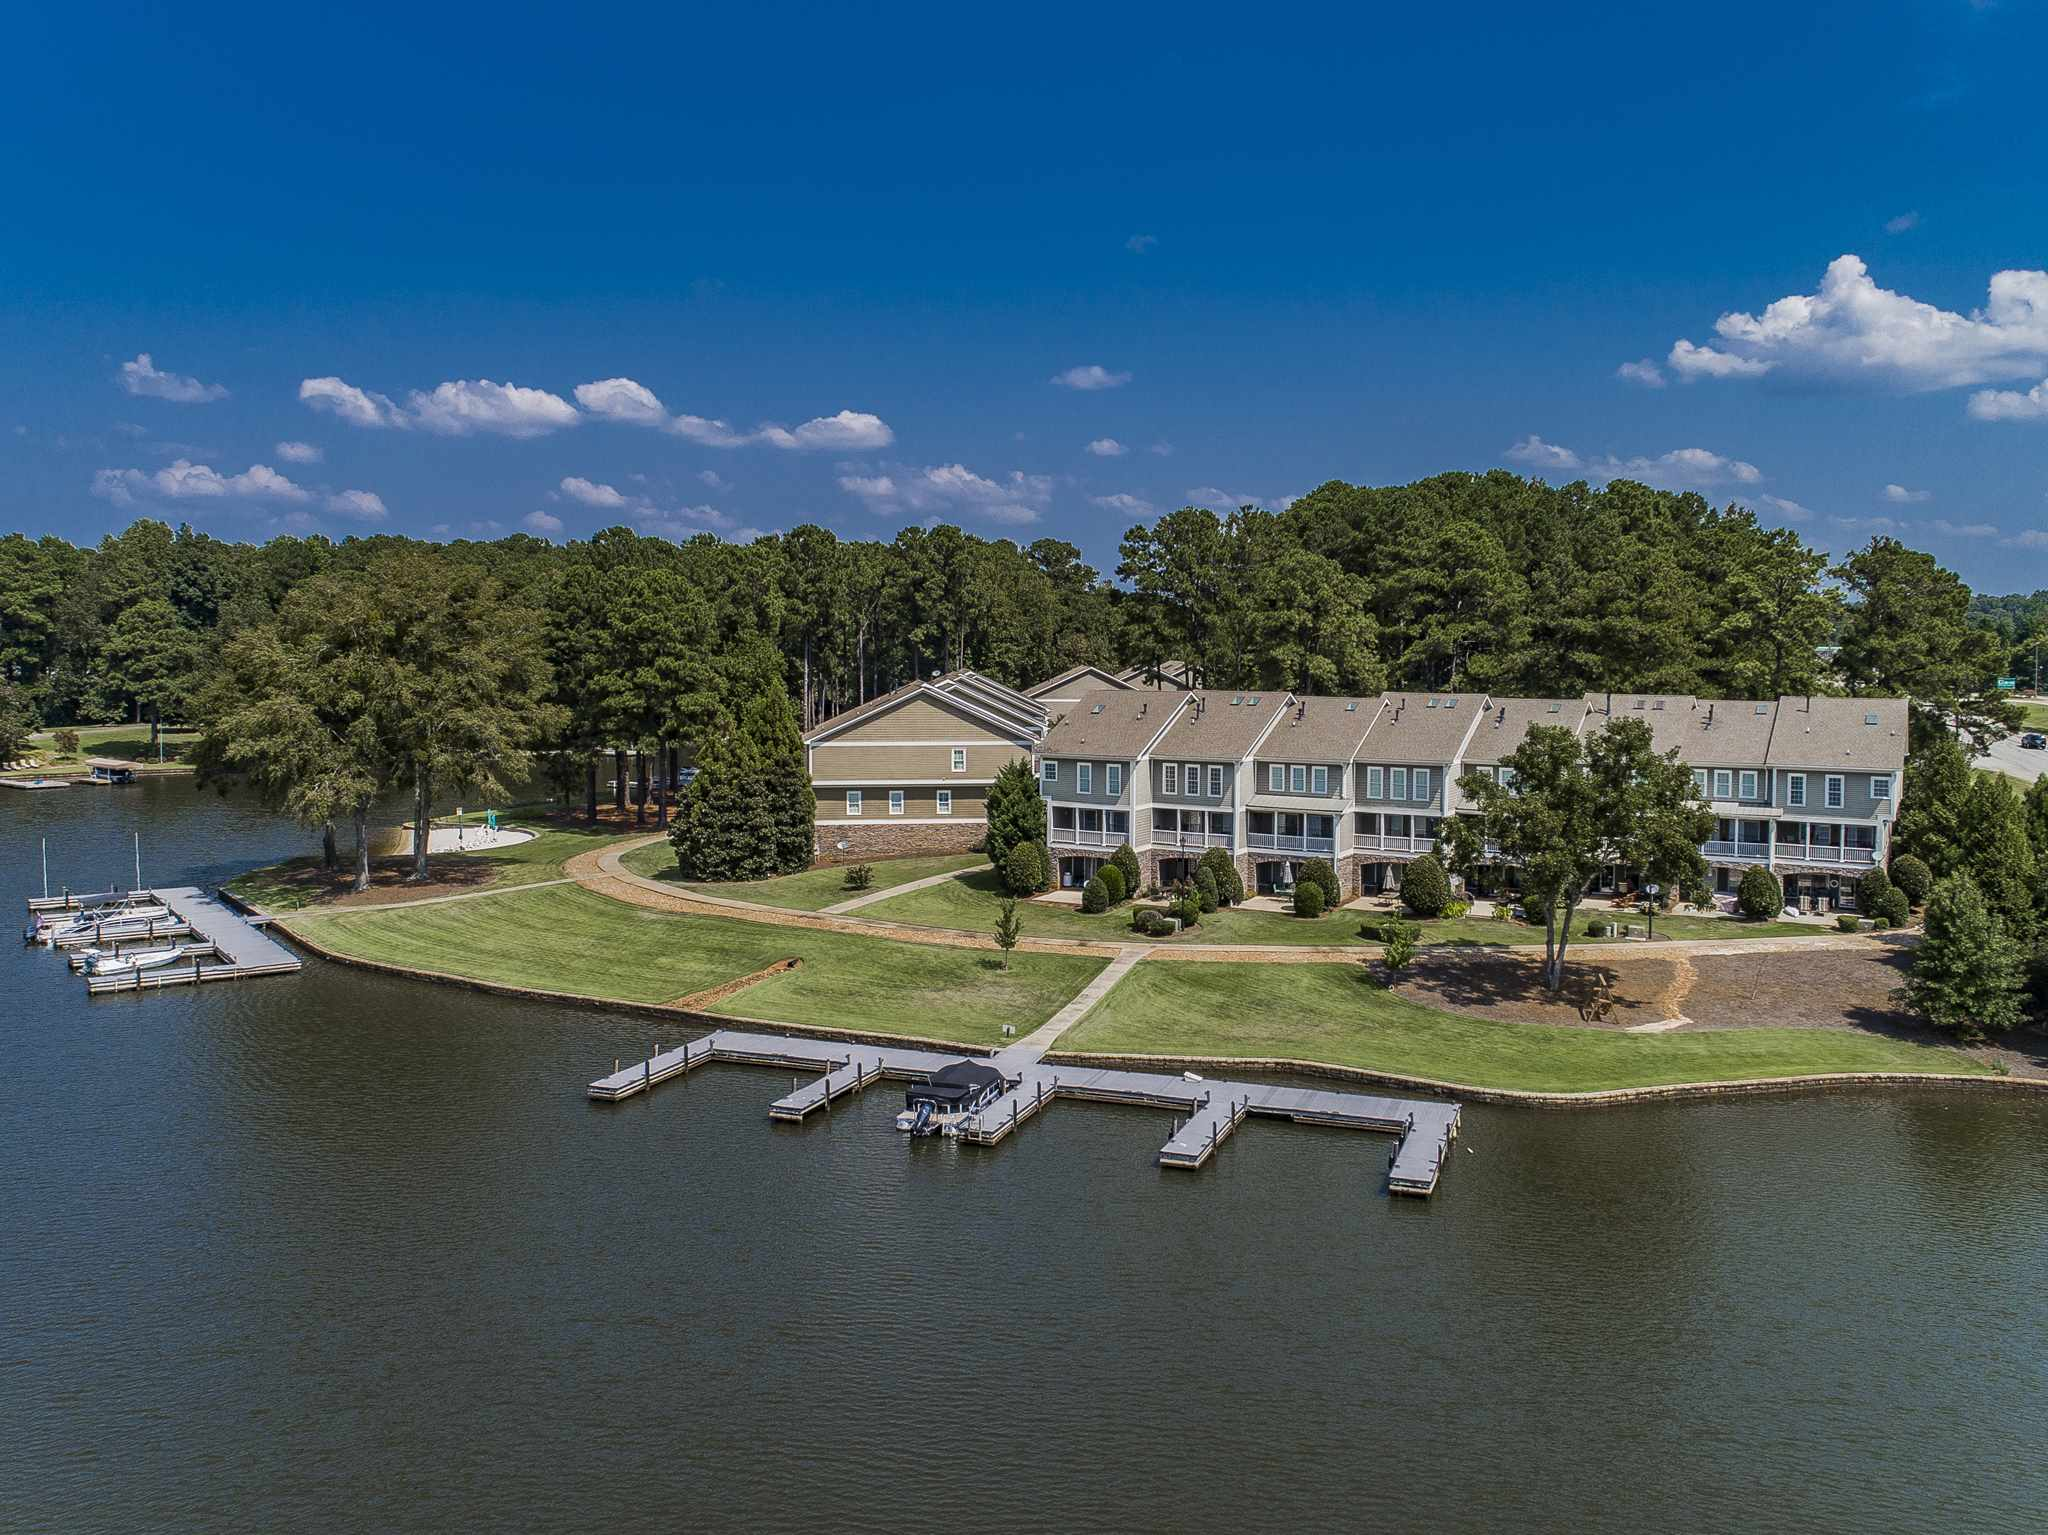 905 GREENSBORO ROAD, one of homes for sale in Lake Oconee